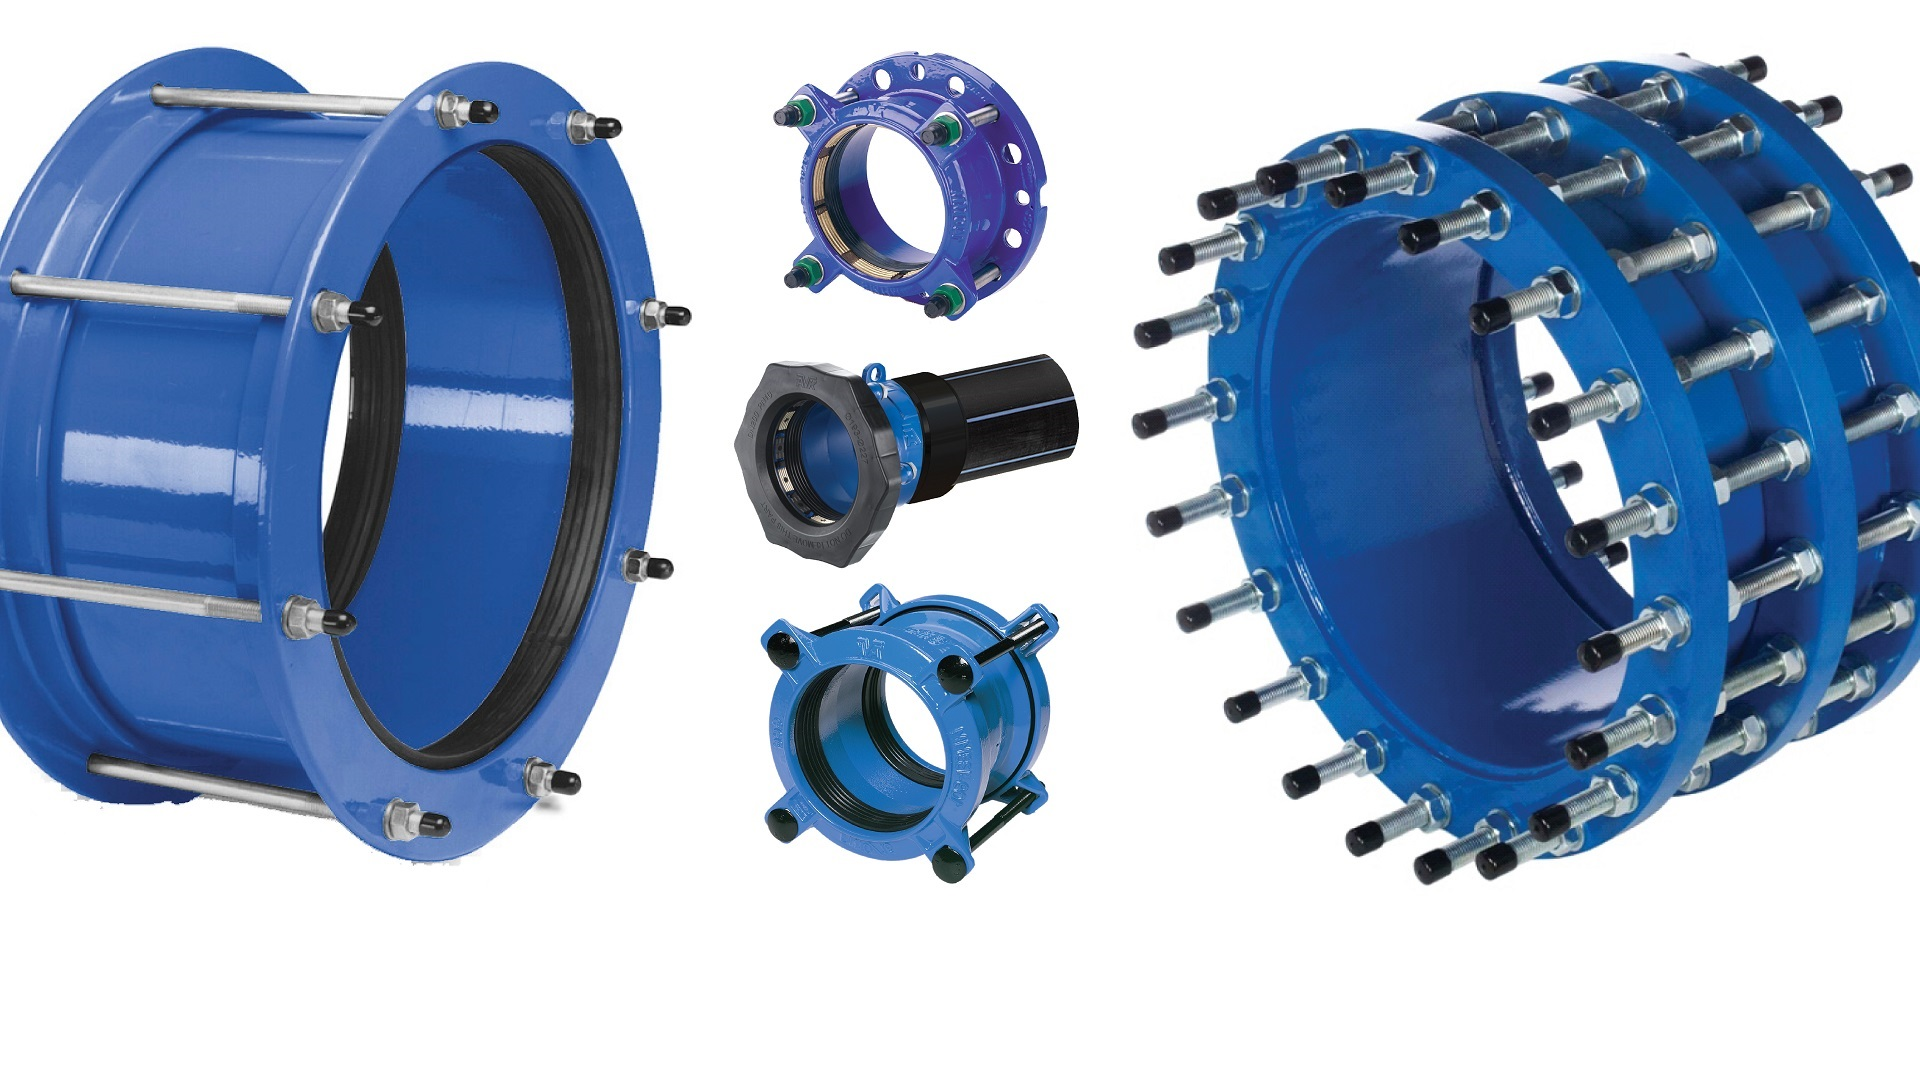 AVK Fire Protection couplings and adaptors